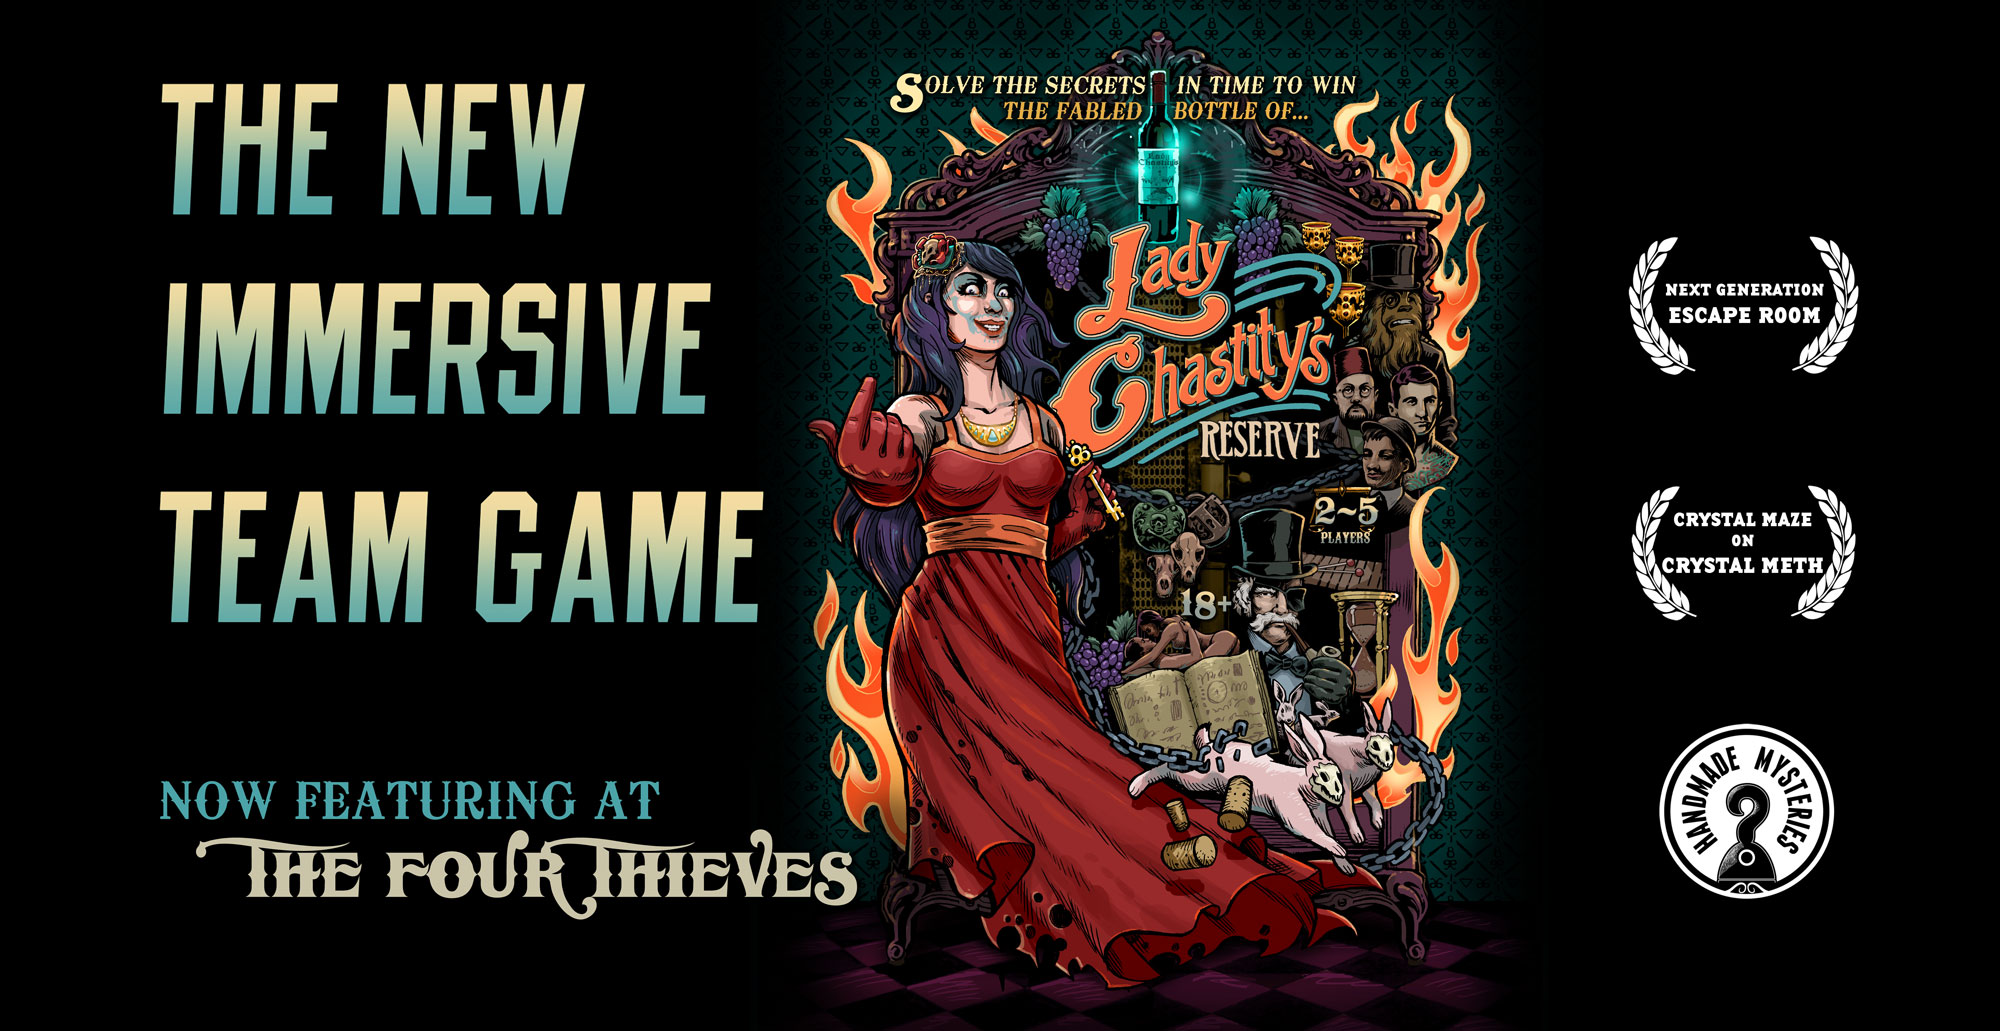 Lady Chastity's Reserve - A New Immersive Team Game